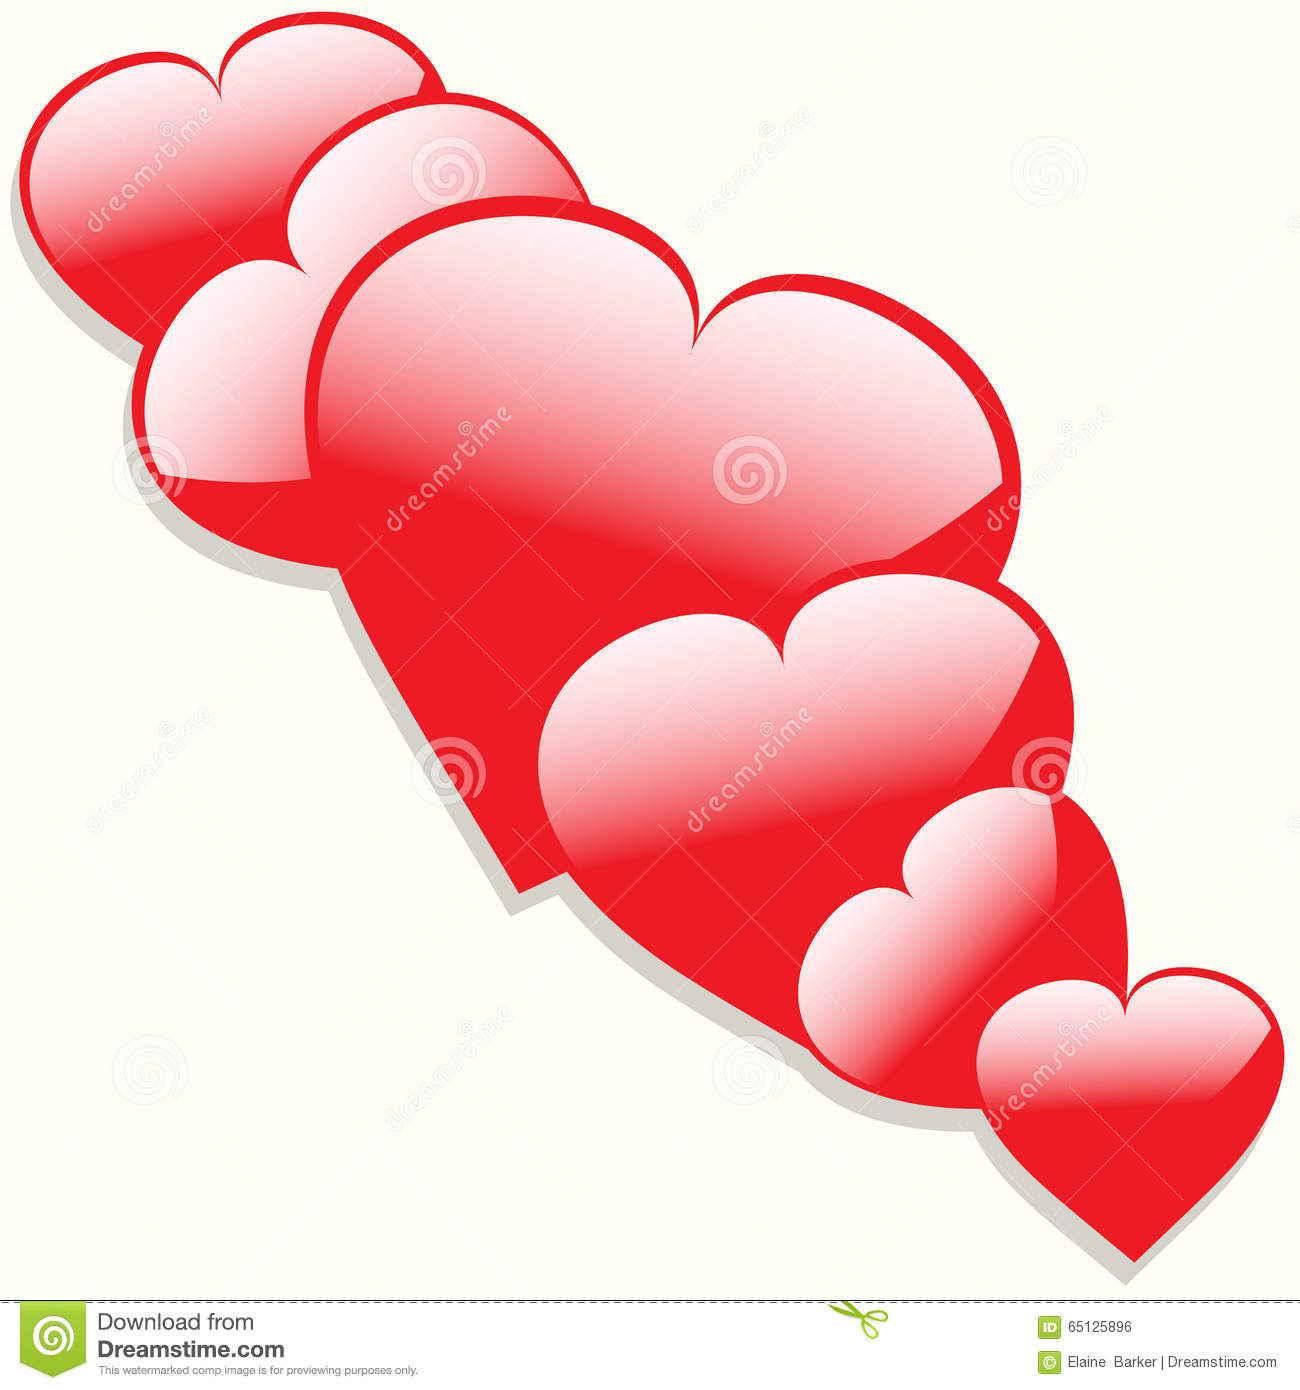 Hearts with shadow background clipart clip art transparent Hearts With Shadow Background Stock Illustration - Image: 65125896 clip art transparent